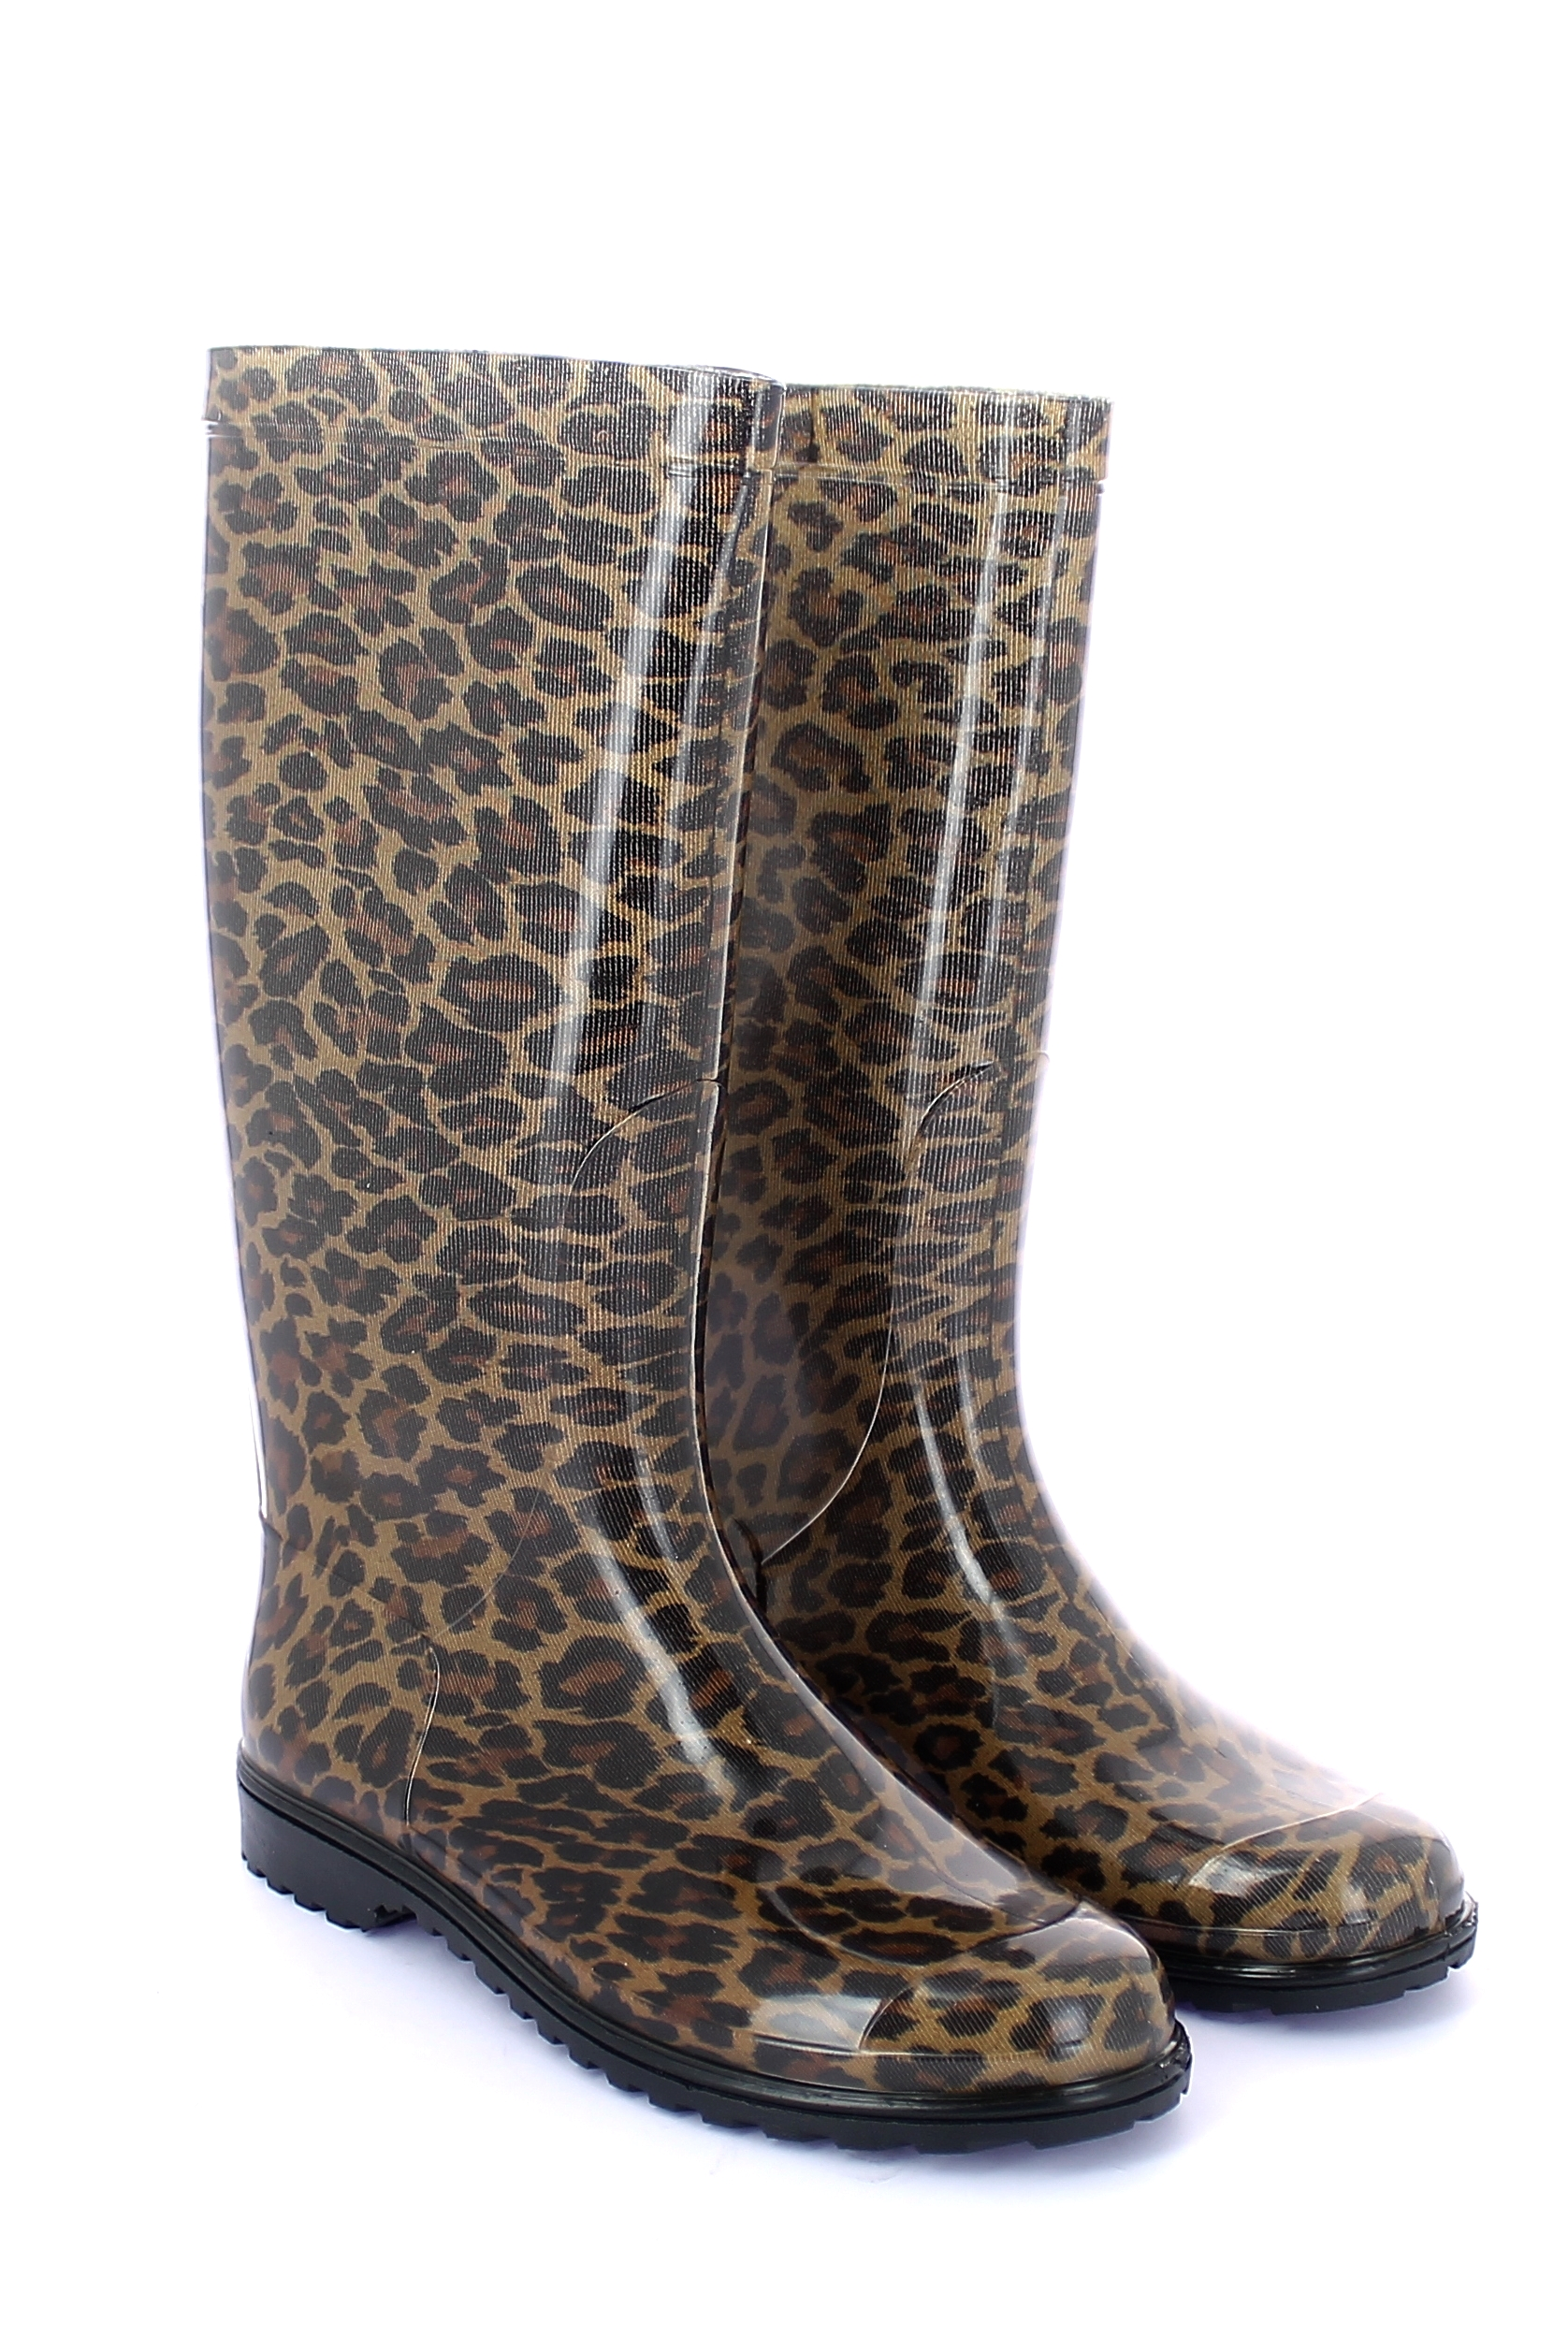 Leopard pattern tubular sock inside a pvc boot with bright finish